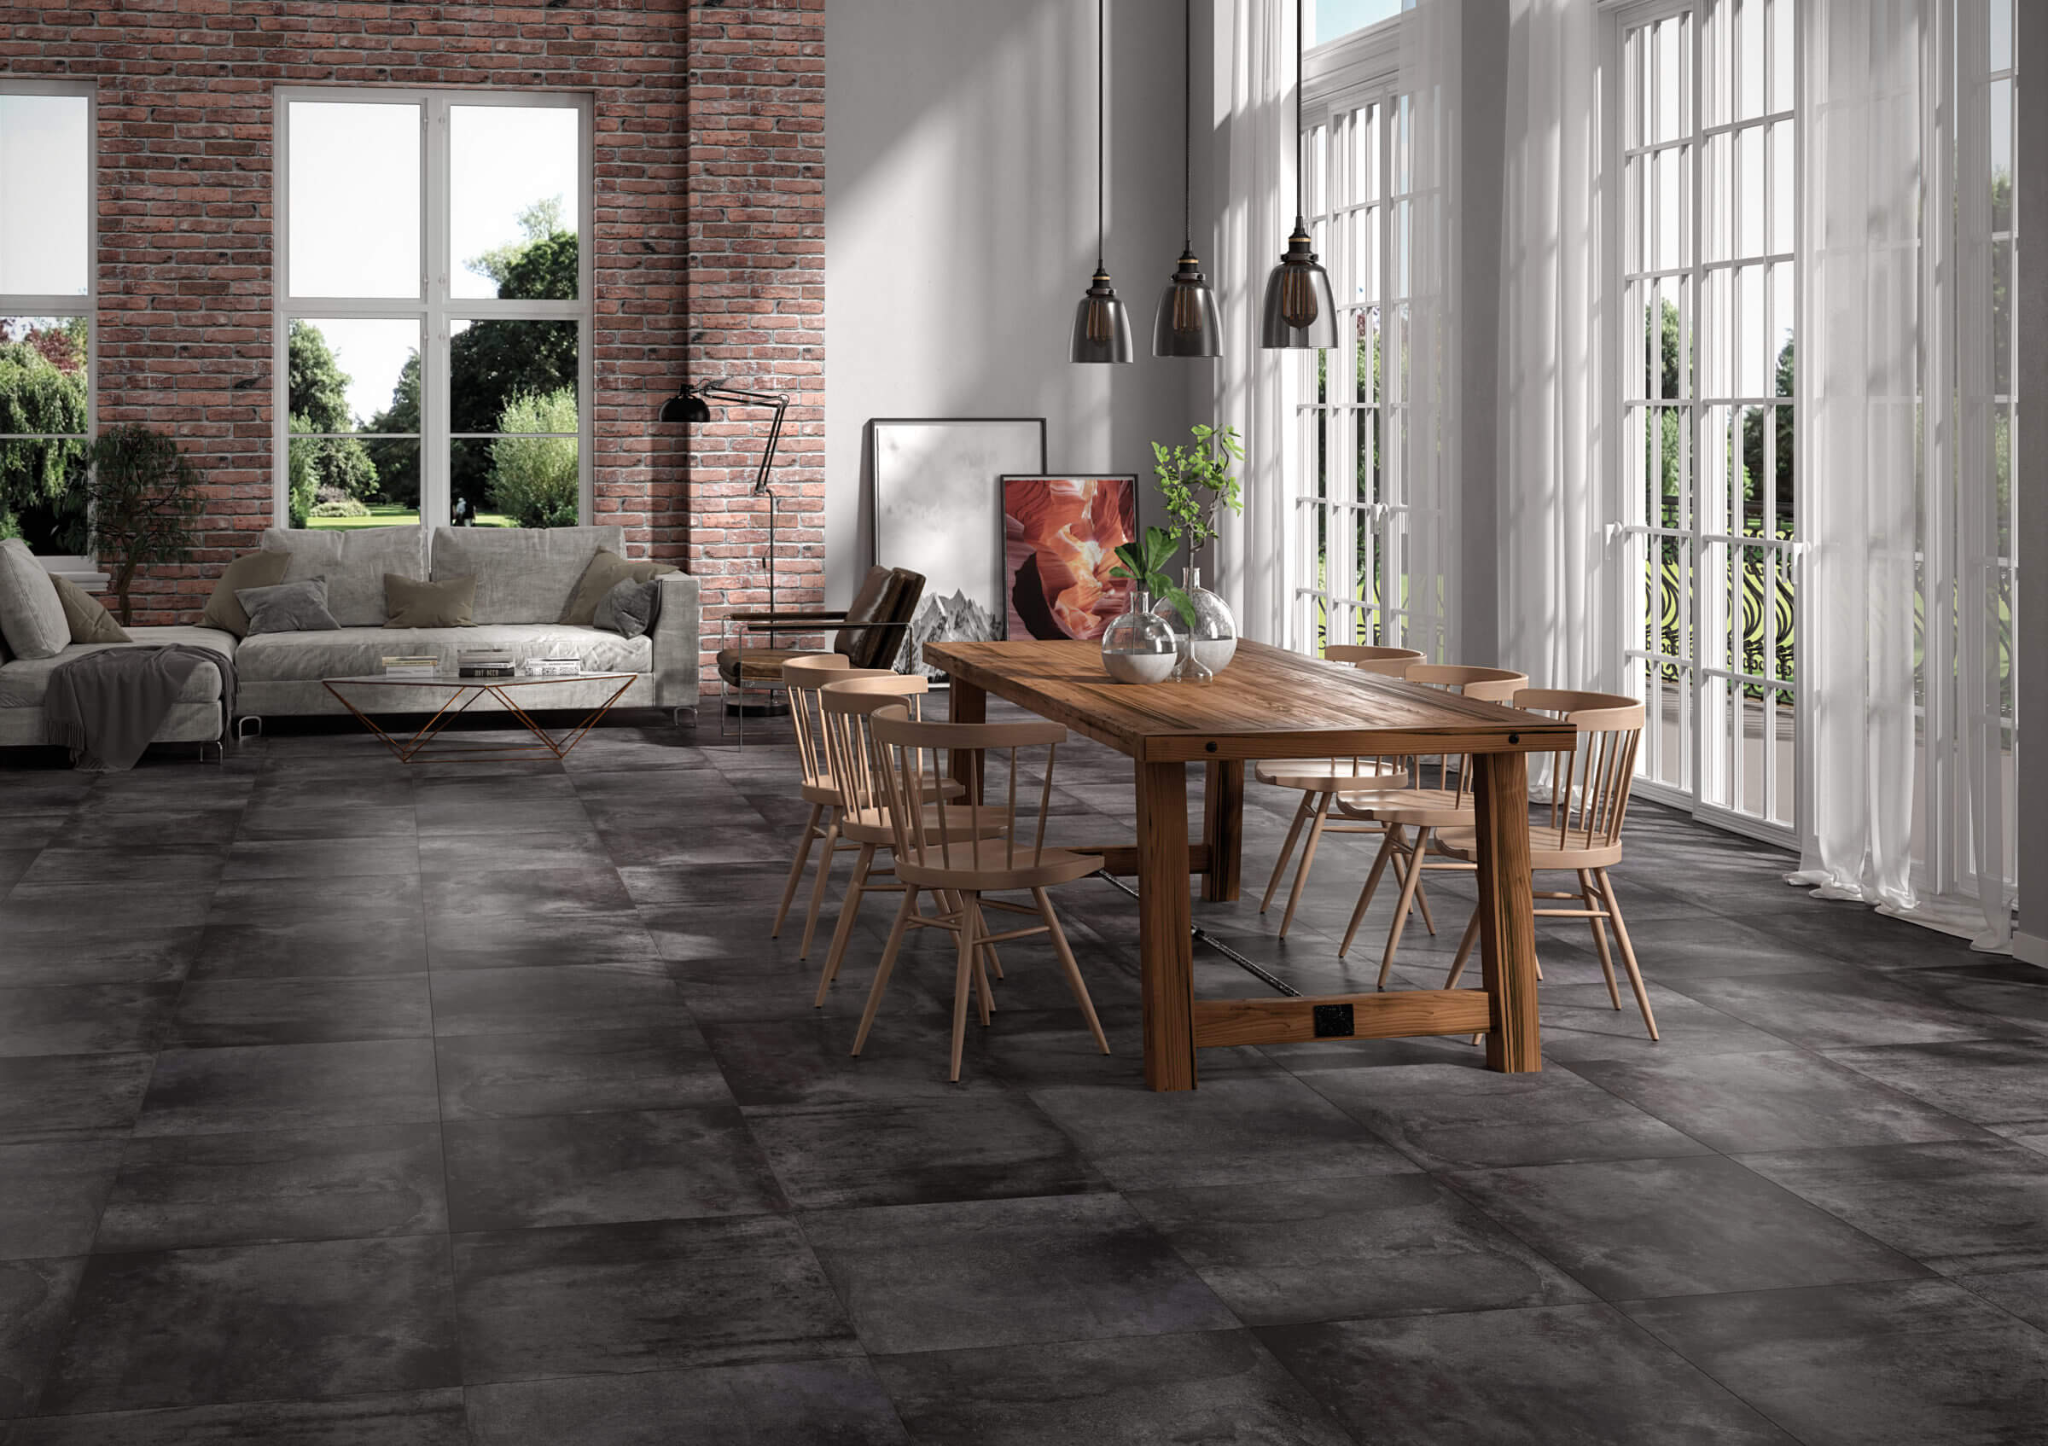 Dining room with oxidized-look black tile flooring